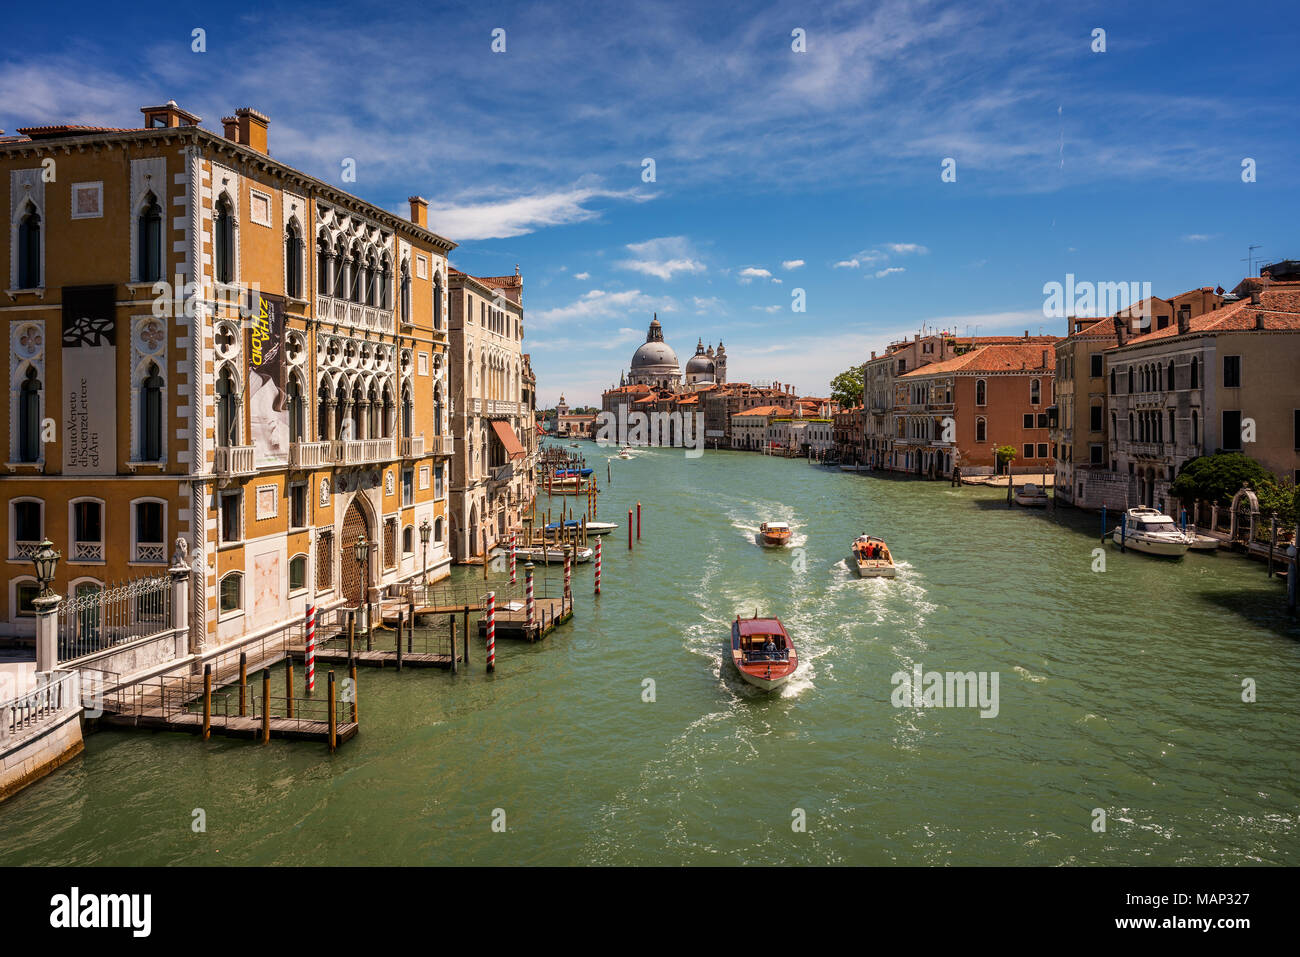 Venice Venedig Venice Venedig Stock Photo 178735599 Alamy